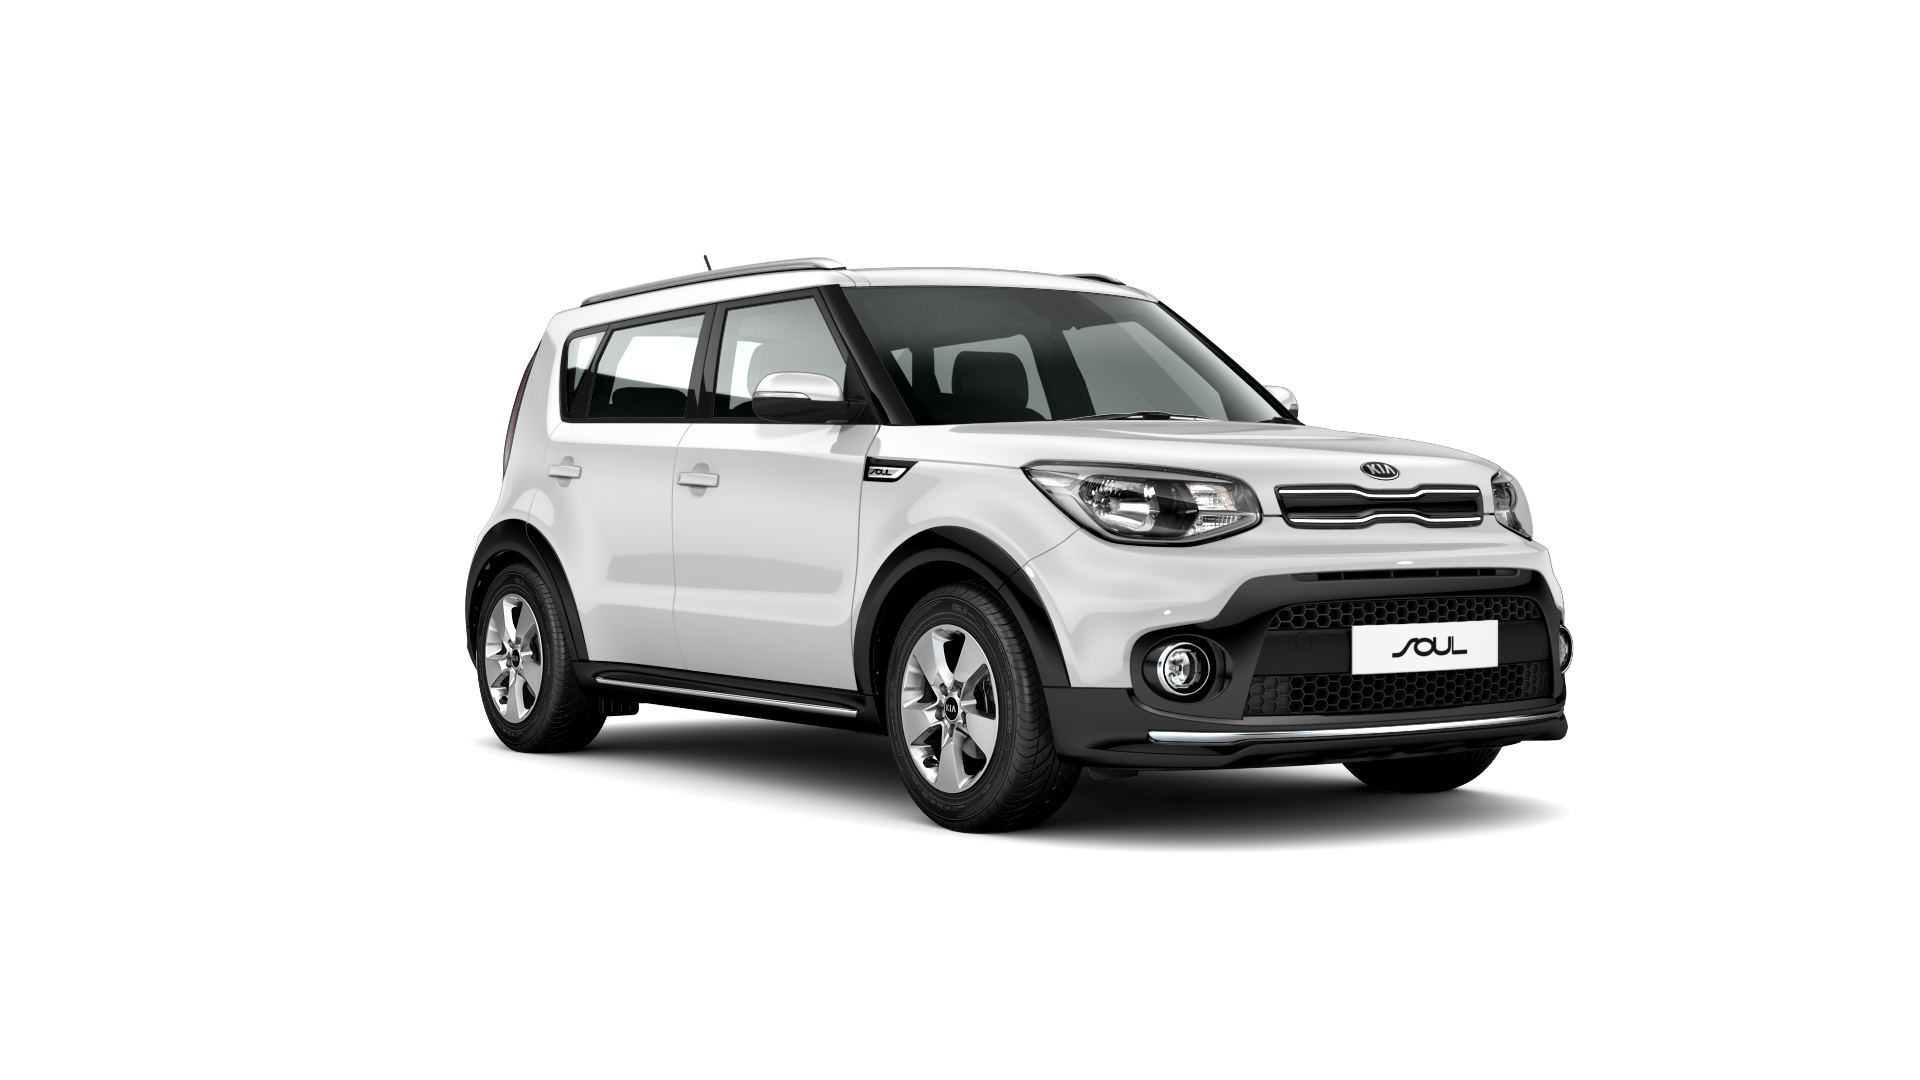 soul in clear-white - Kia HD PNG